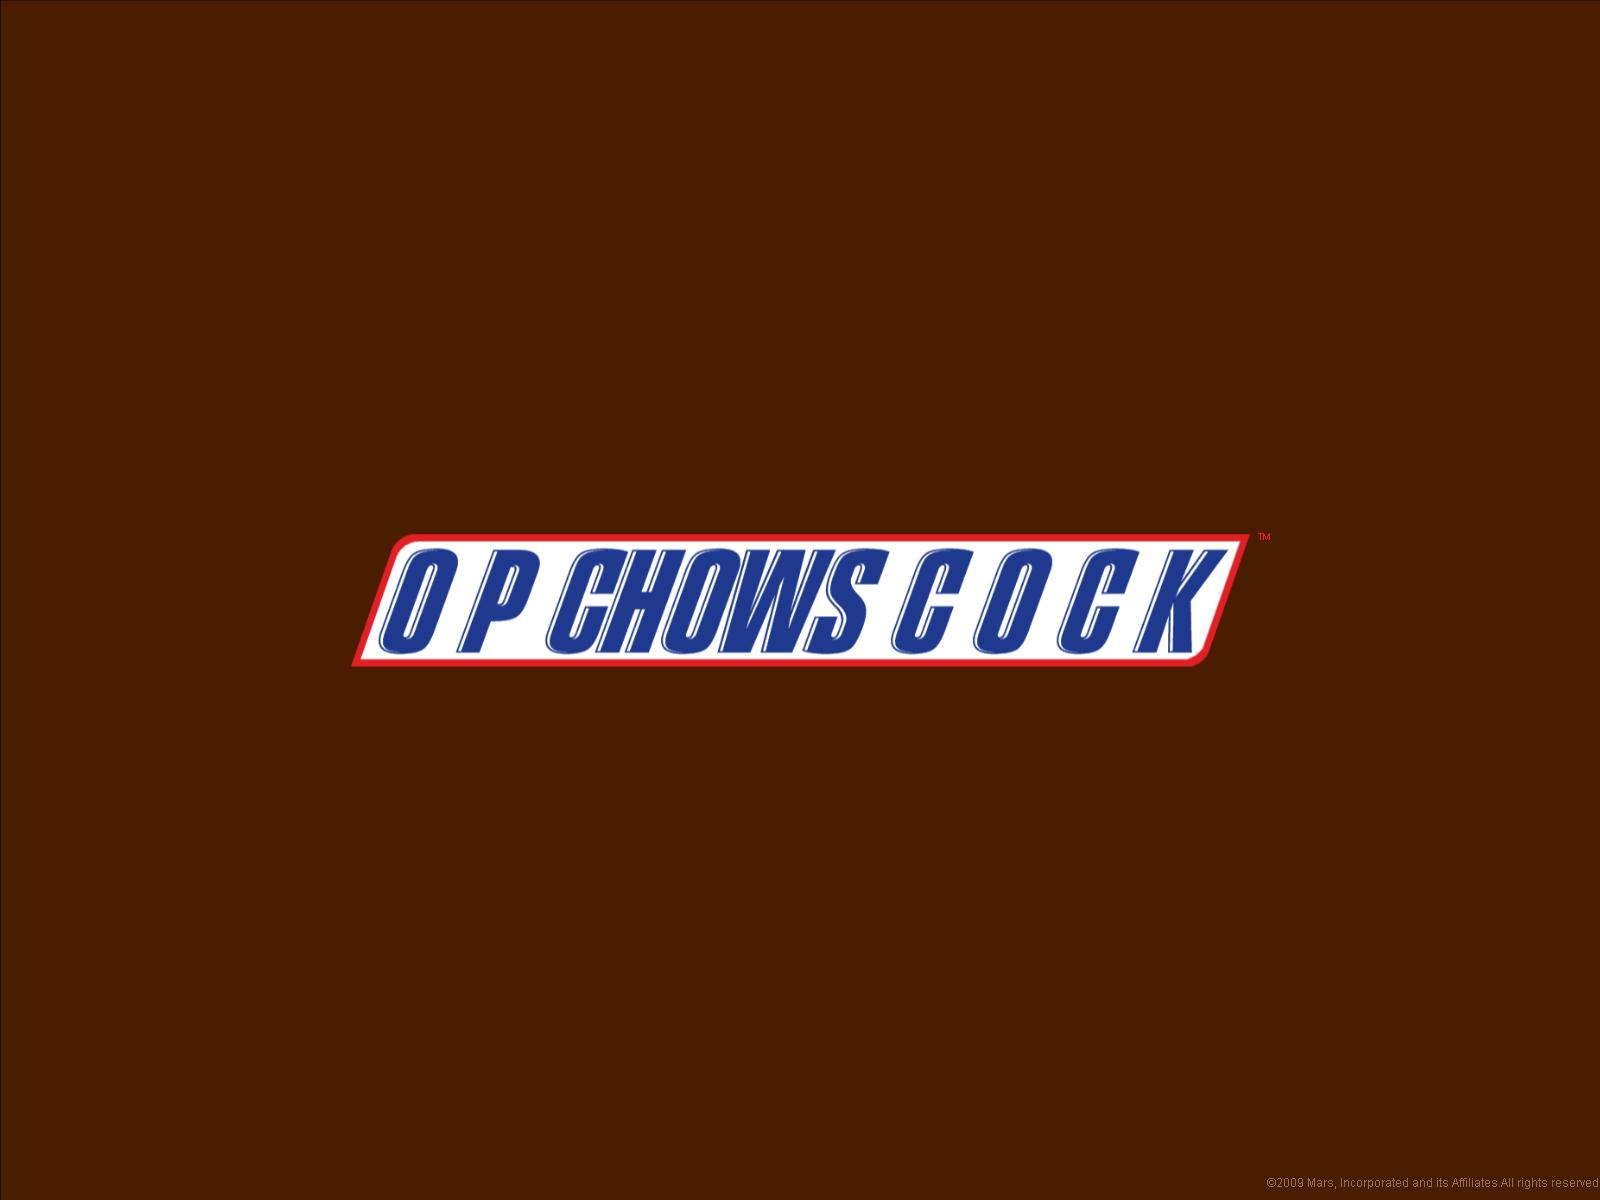 so Snickers made a logo generator.